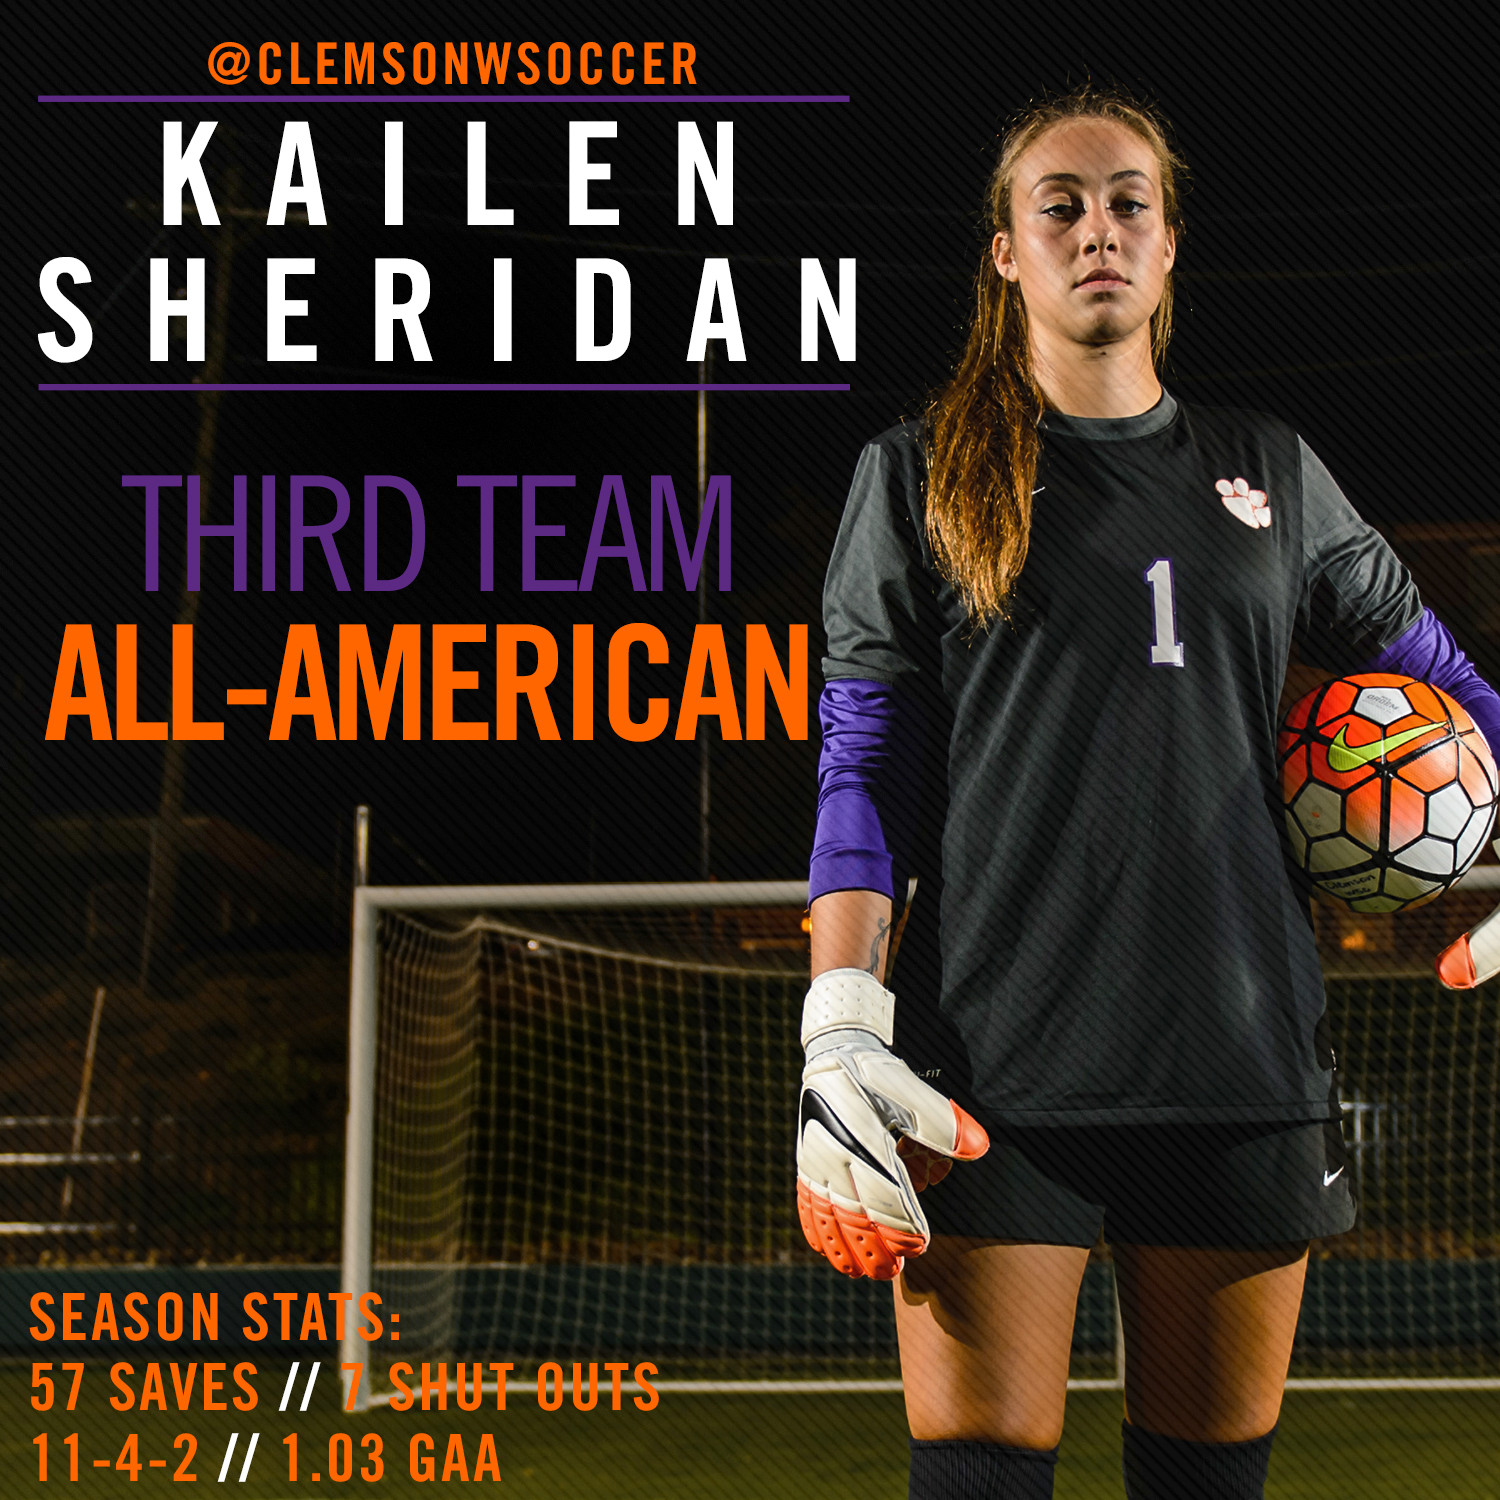 Sheridan Earns All-American Honors